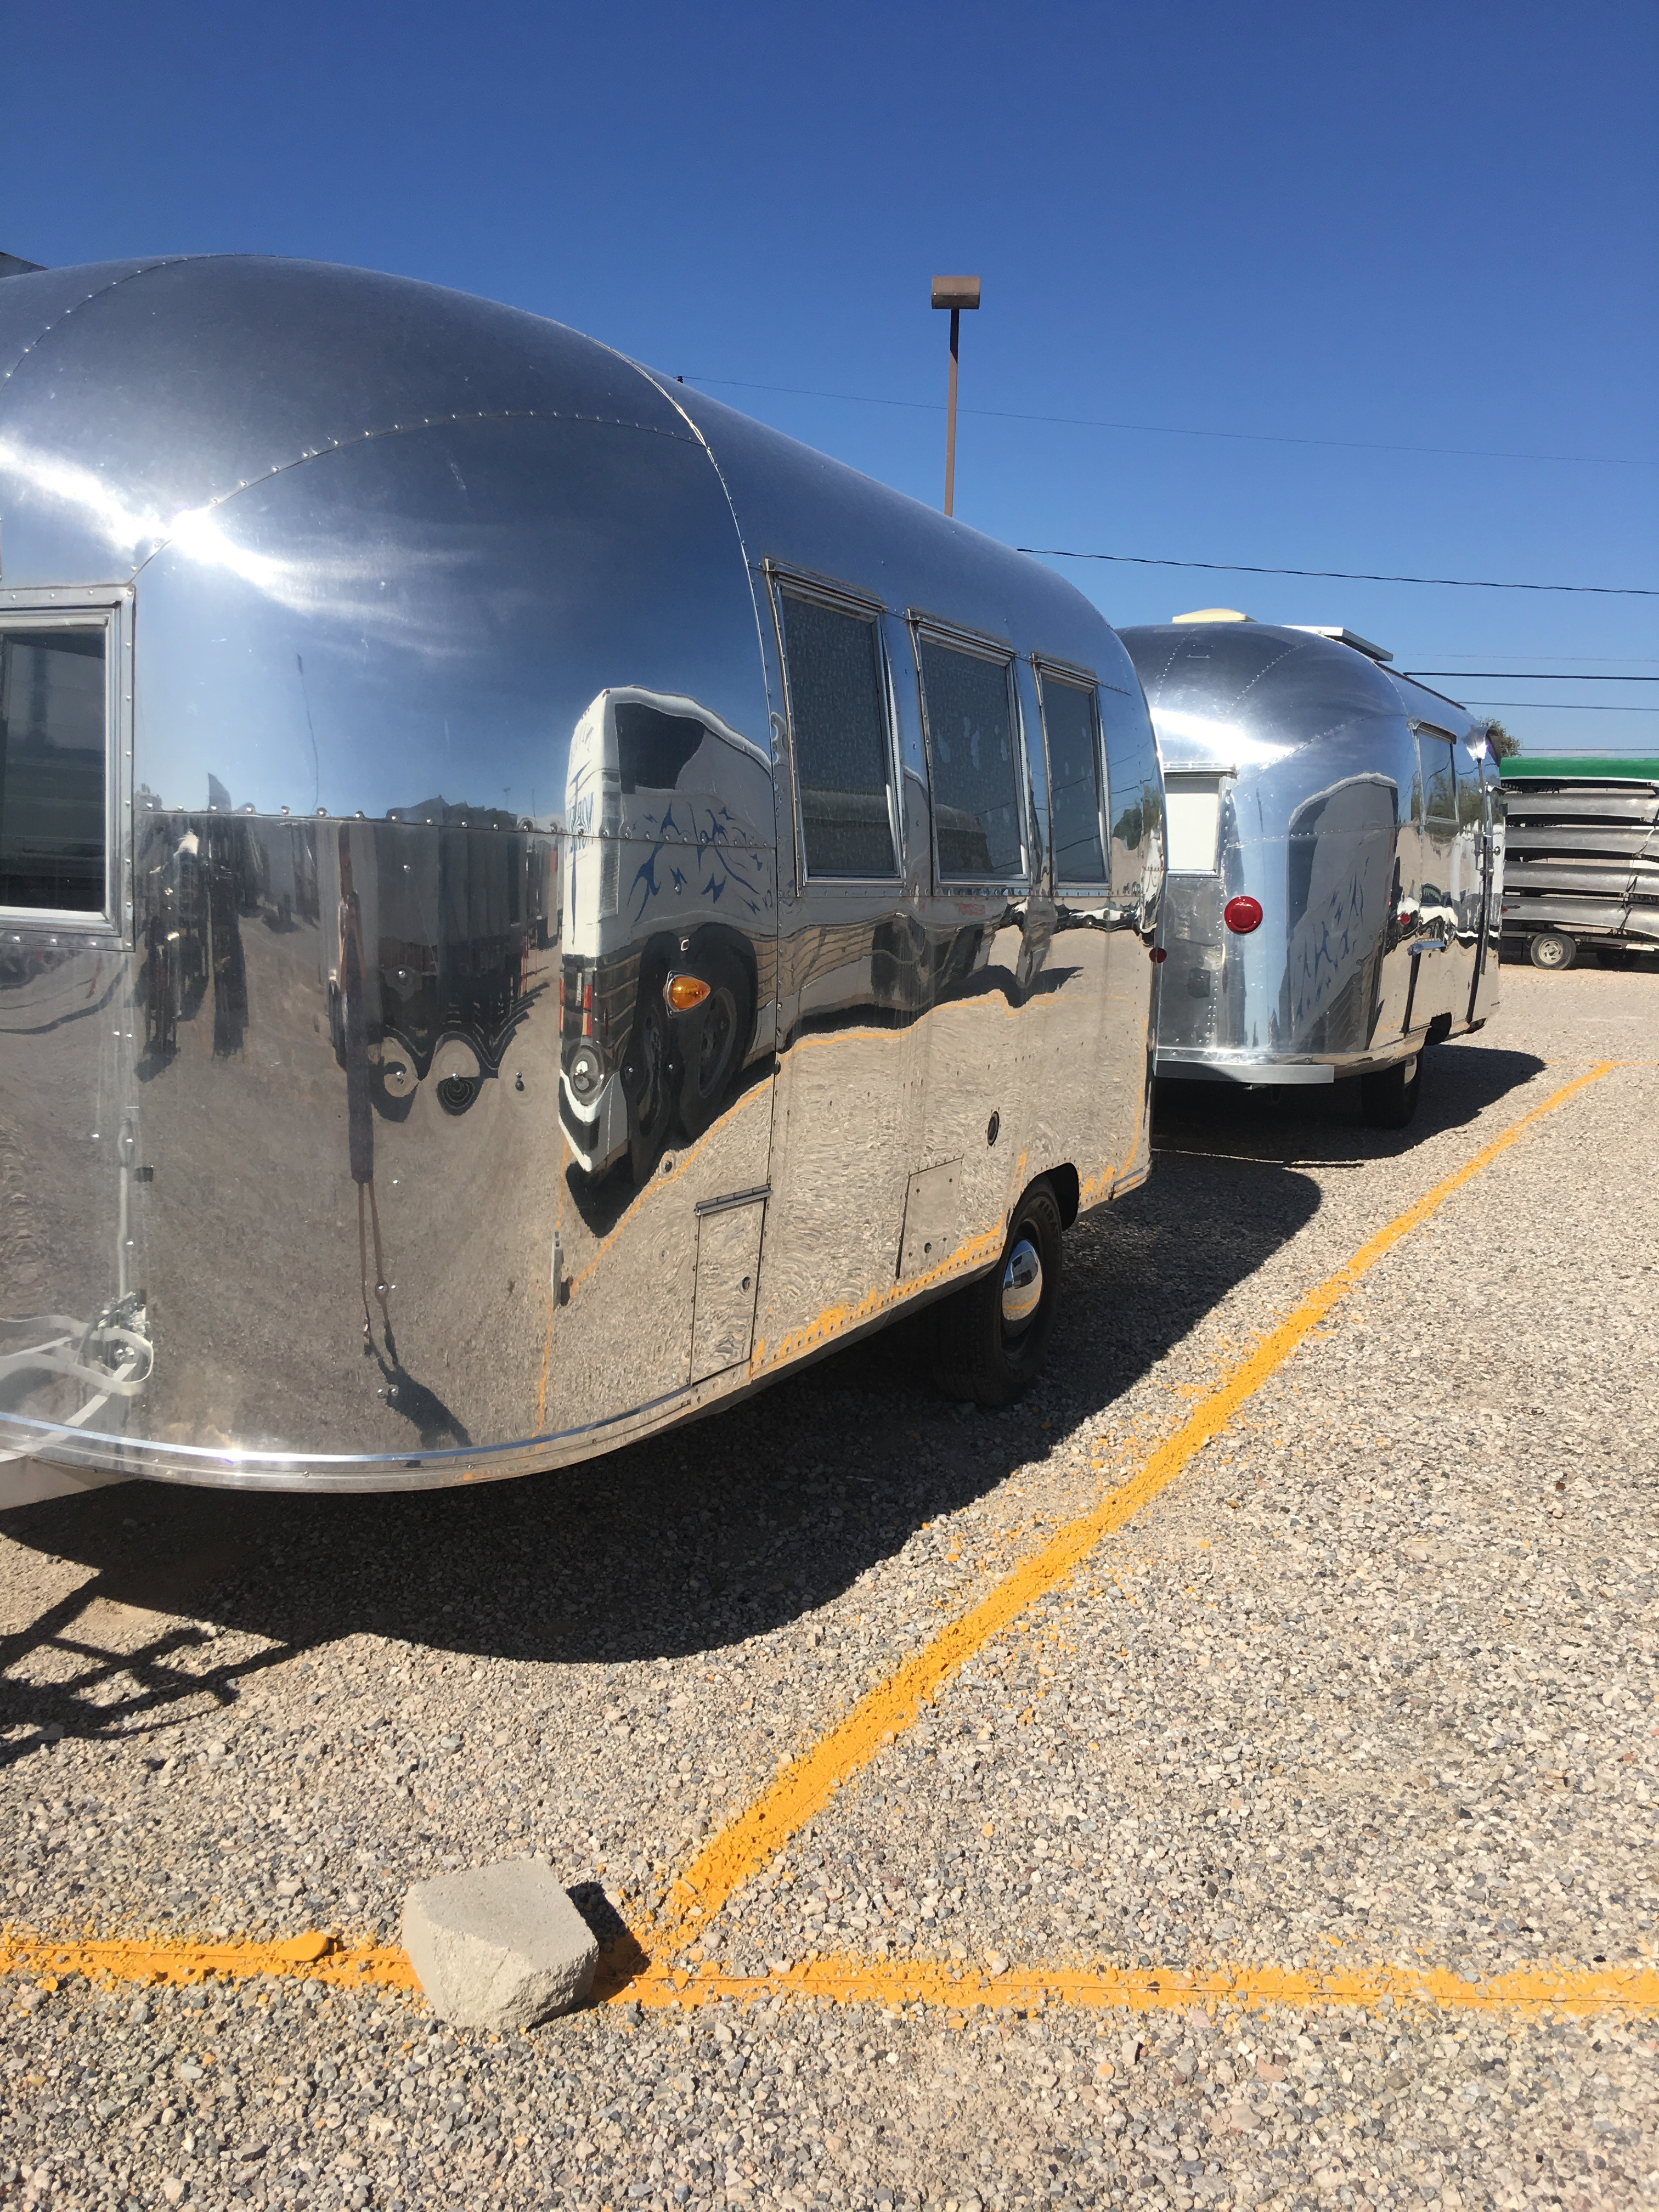 Affordable RV Parking in Las Vegas, NV